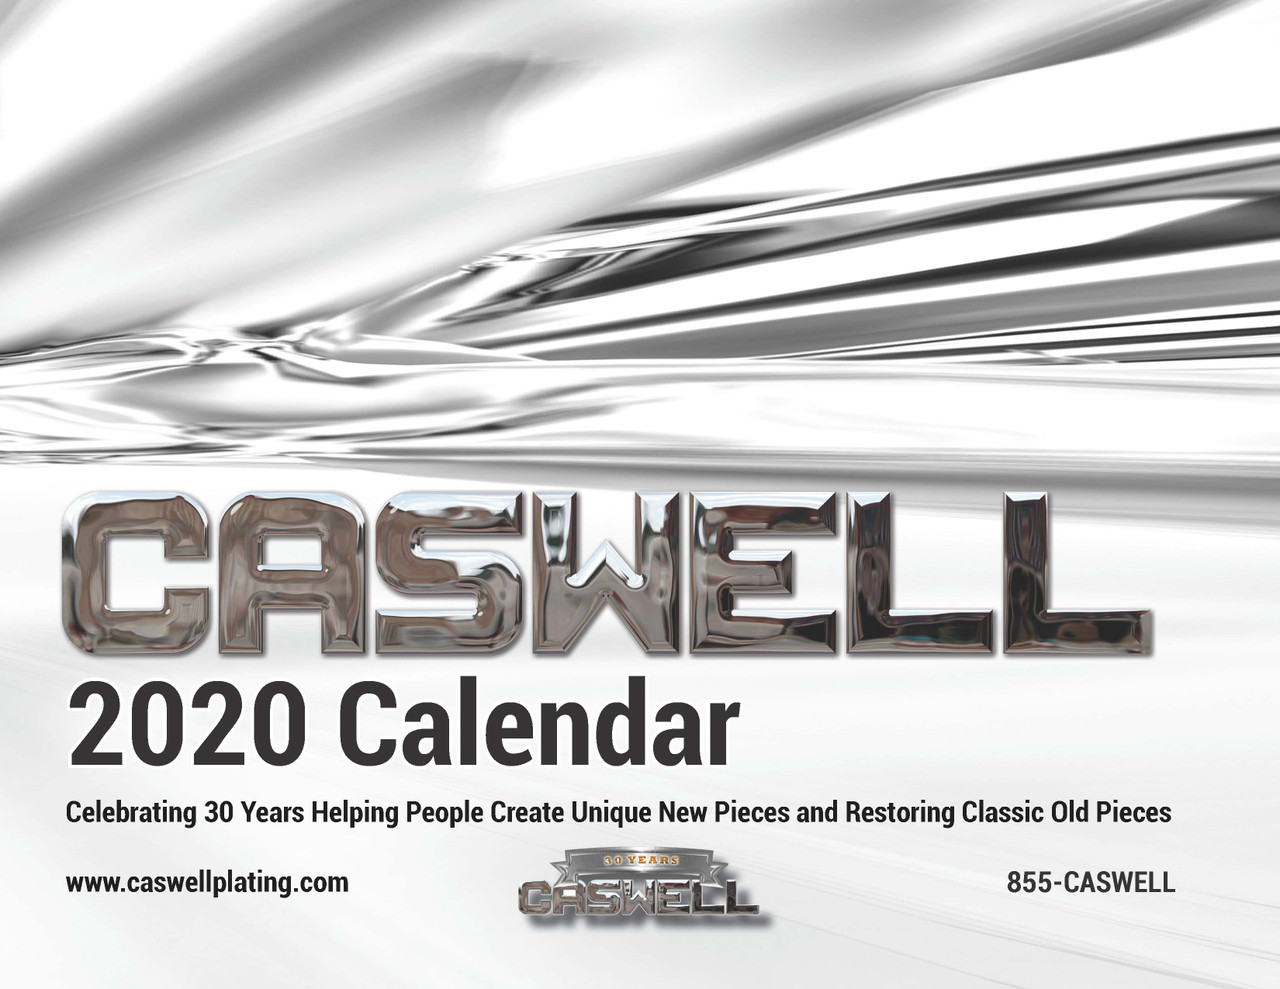 Caswell Photo Contest - Win An Apple Watch